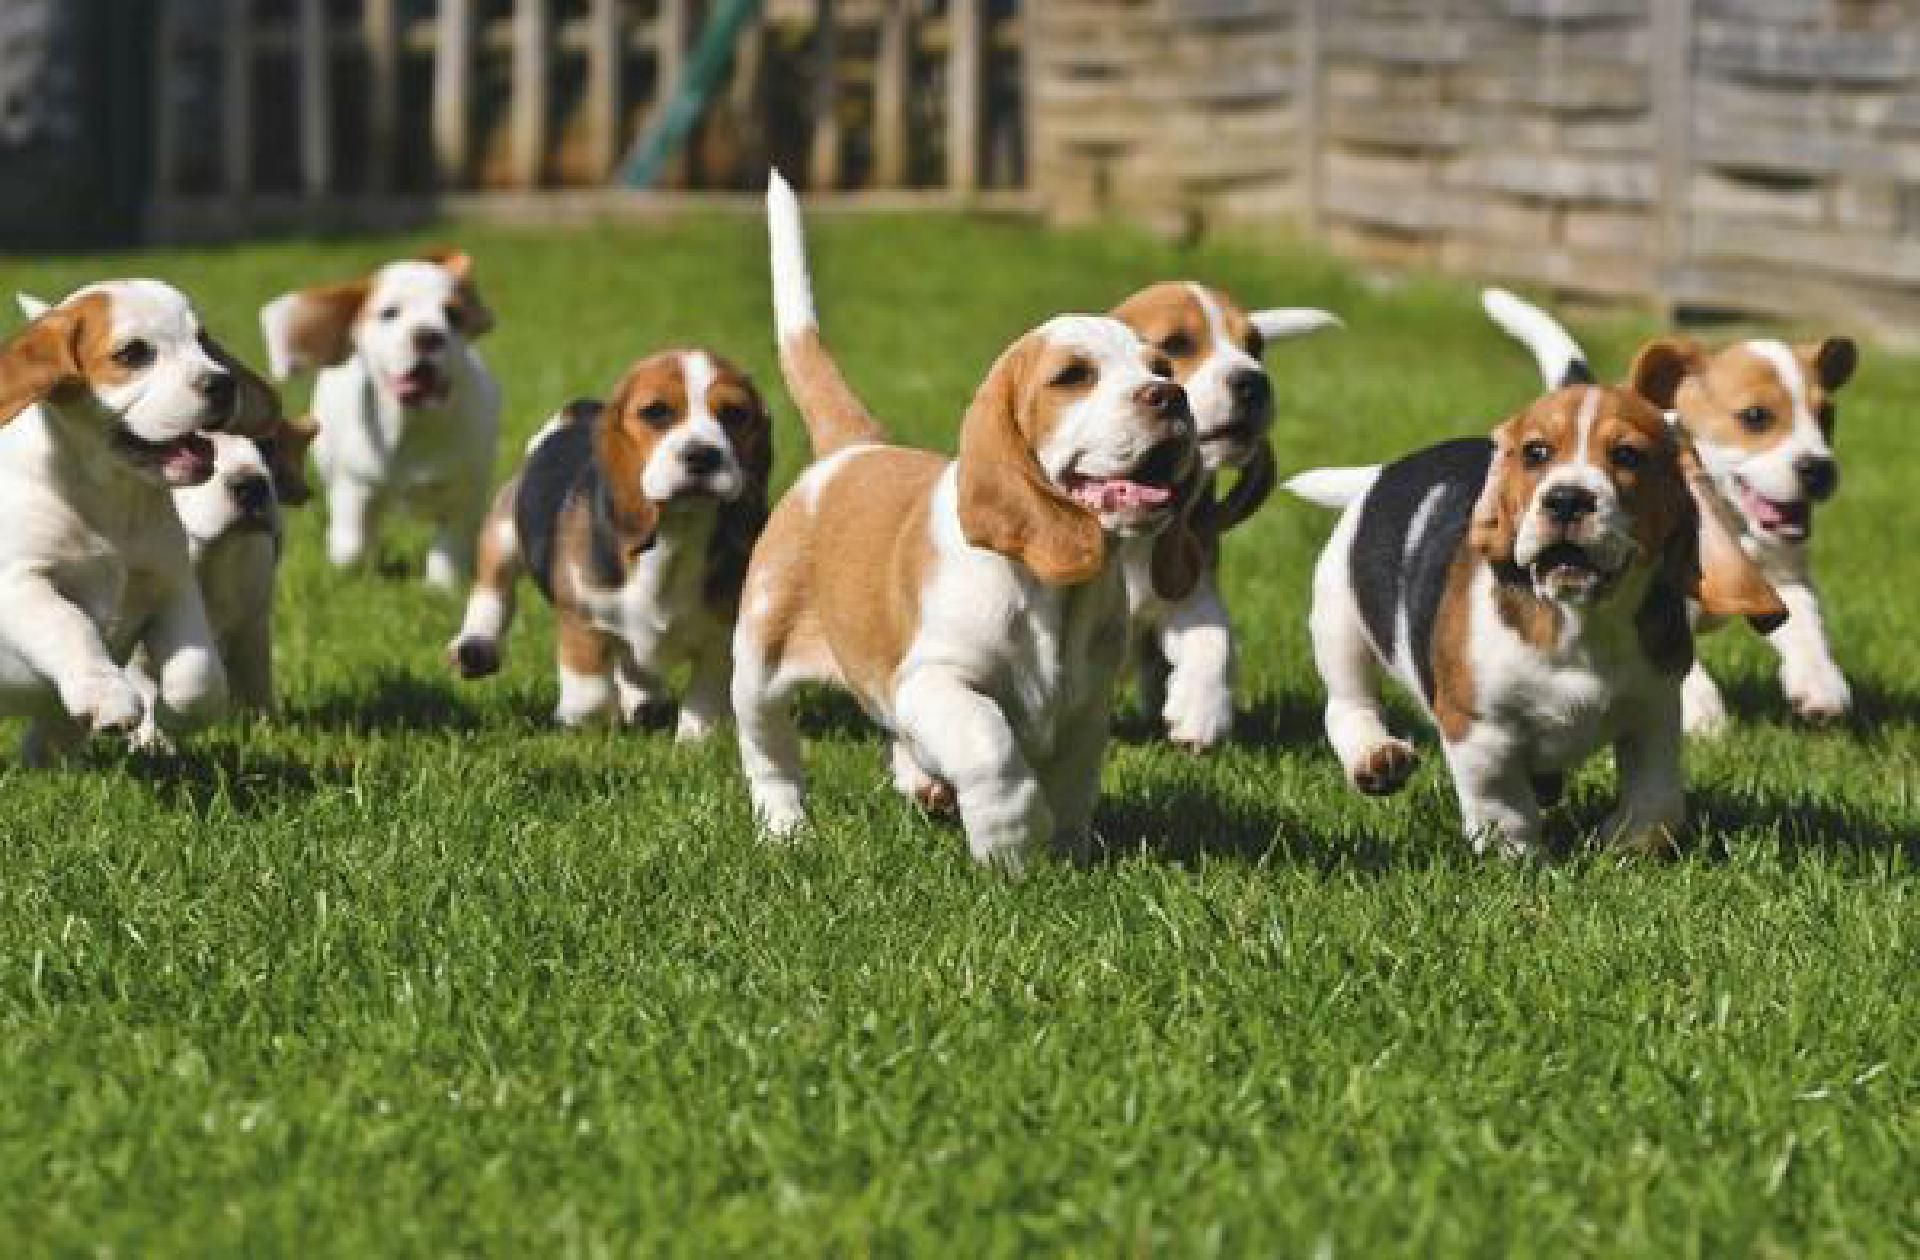 Beagle (Canis lupus f. familiaris), Welpen, werden zur Jagd ausgebildet | Beagle (Canis lupus f. familiaris), puppies, are being educated for hunting